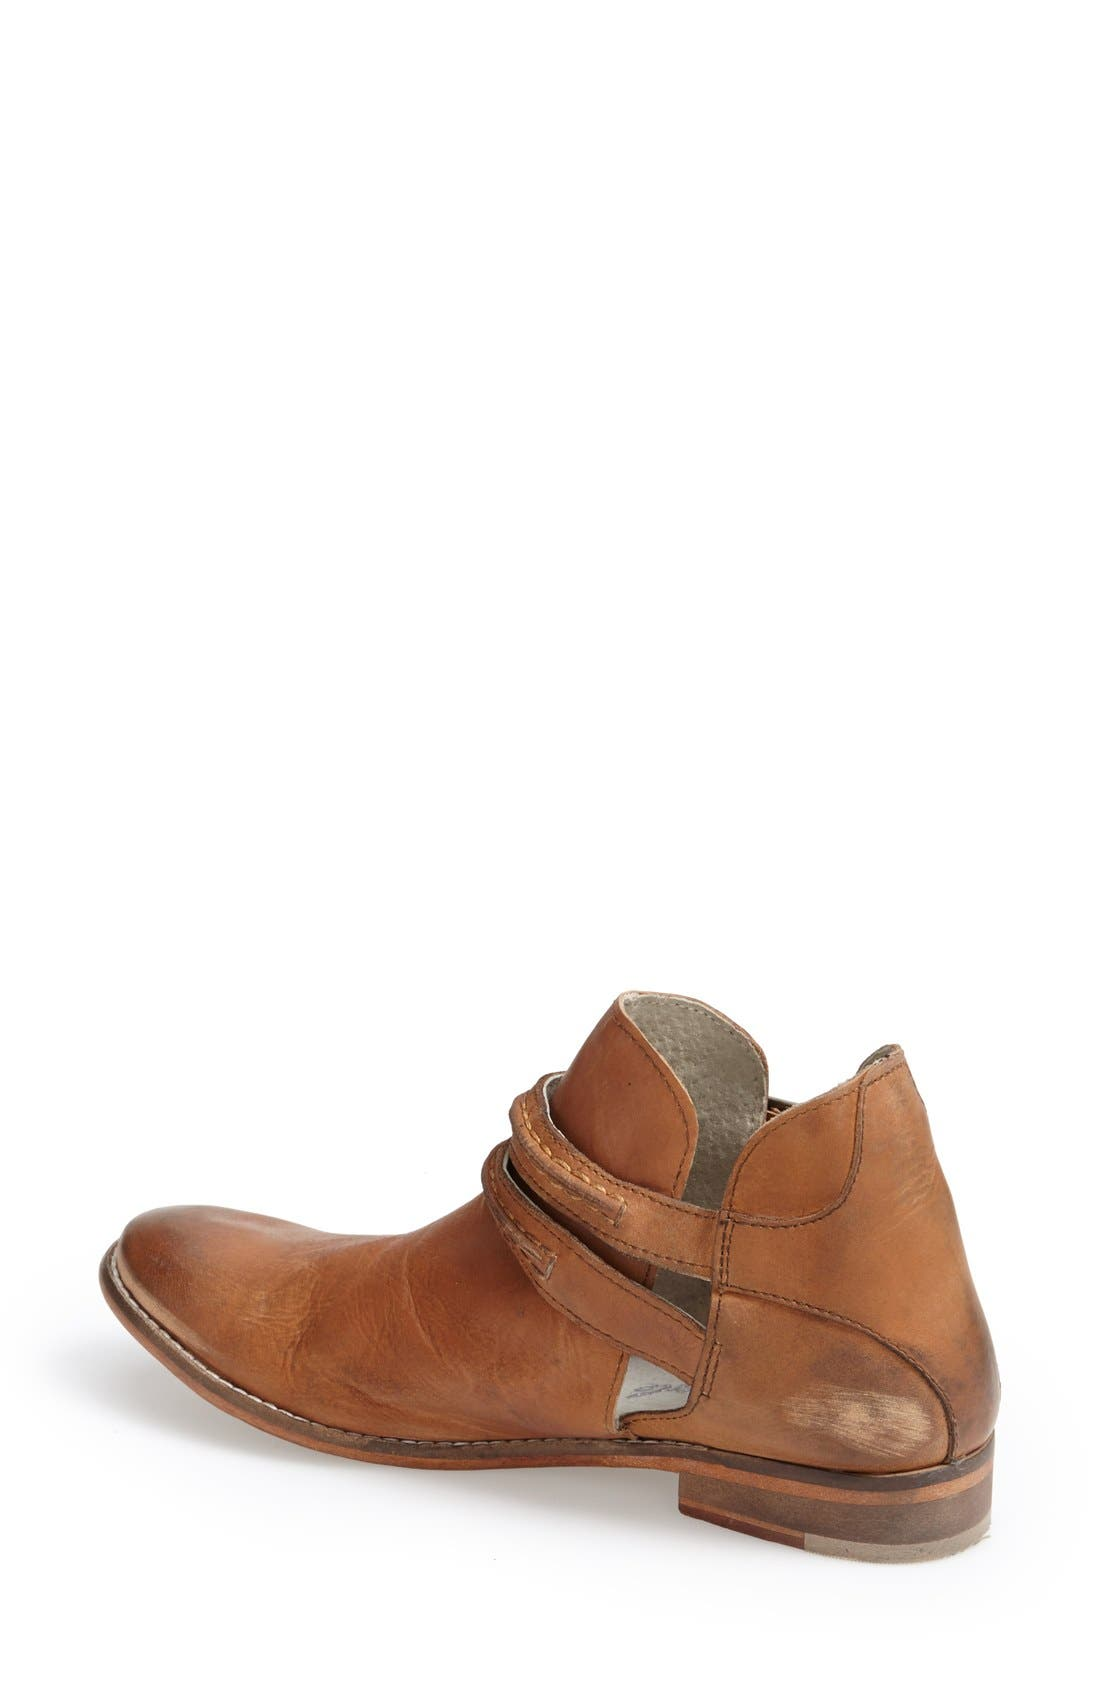 Alternate Image 2  - Free People 'Braeburn' Belted Split Shaft Bootie (Women)